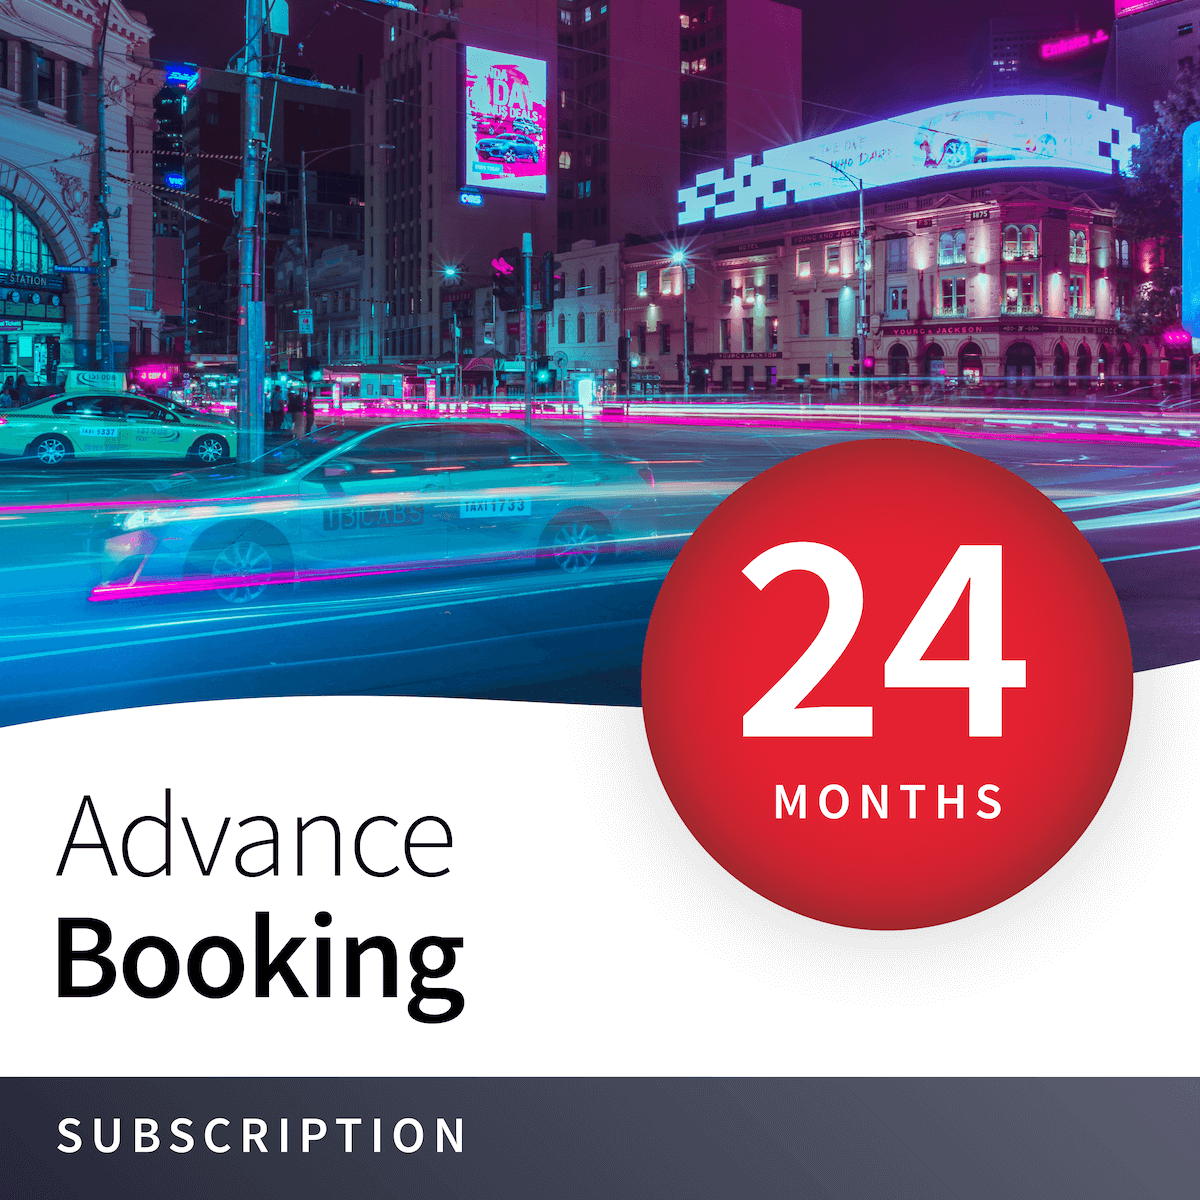 Priority Advance Booking - 24 Months 16